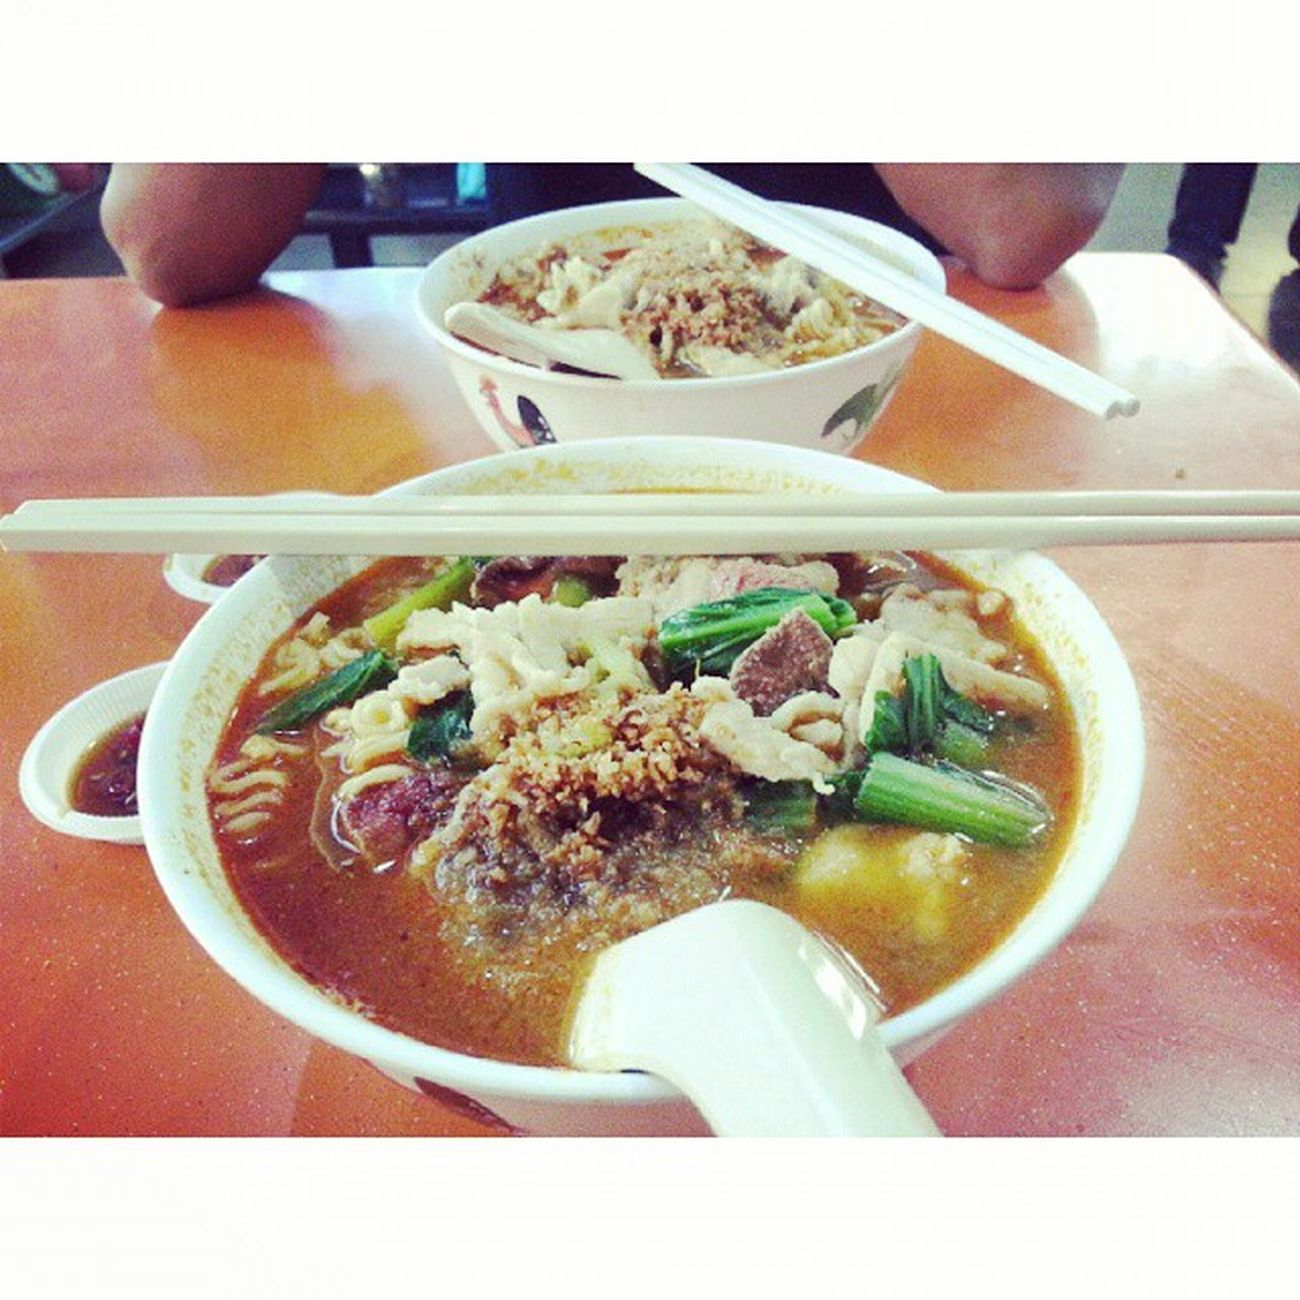 Spicy normal kkm for lunch with @jyangsaw YumYum Lunch Kkm Finally